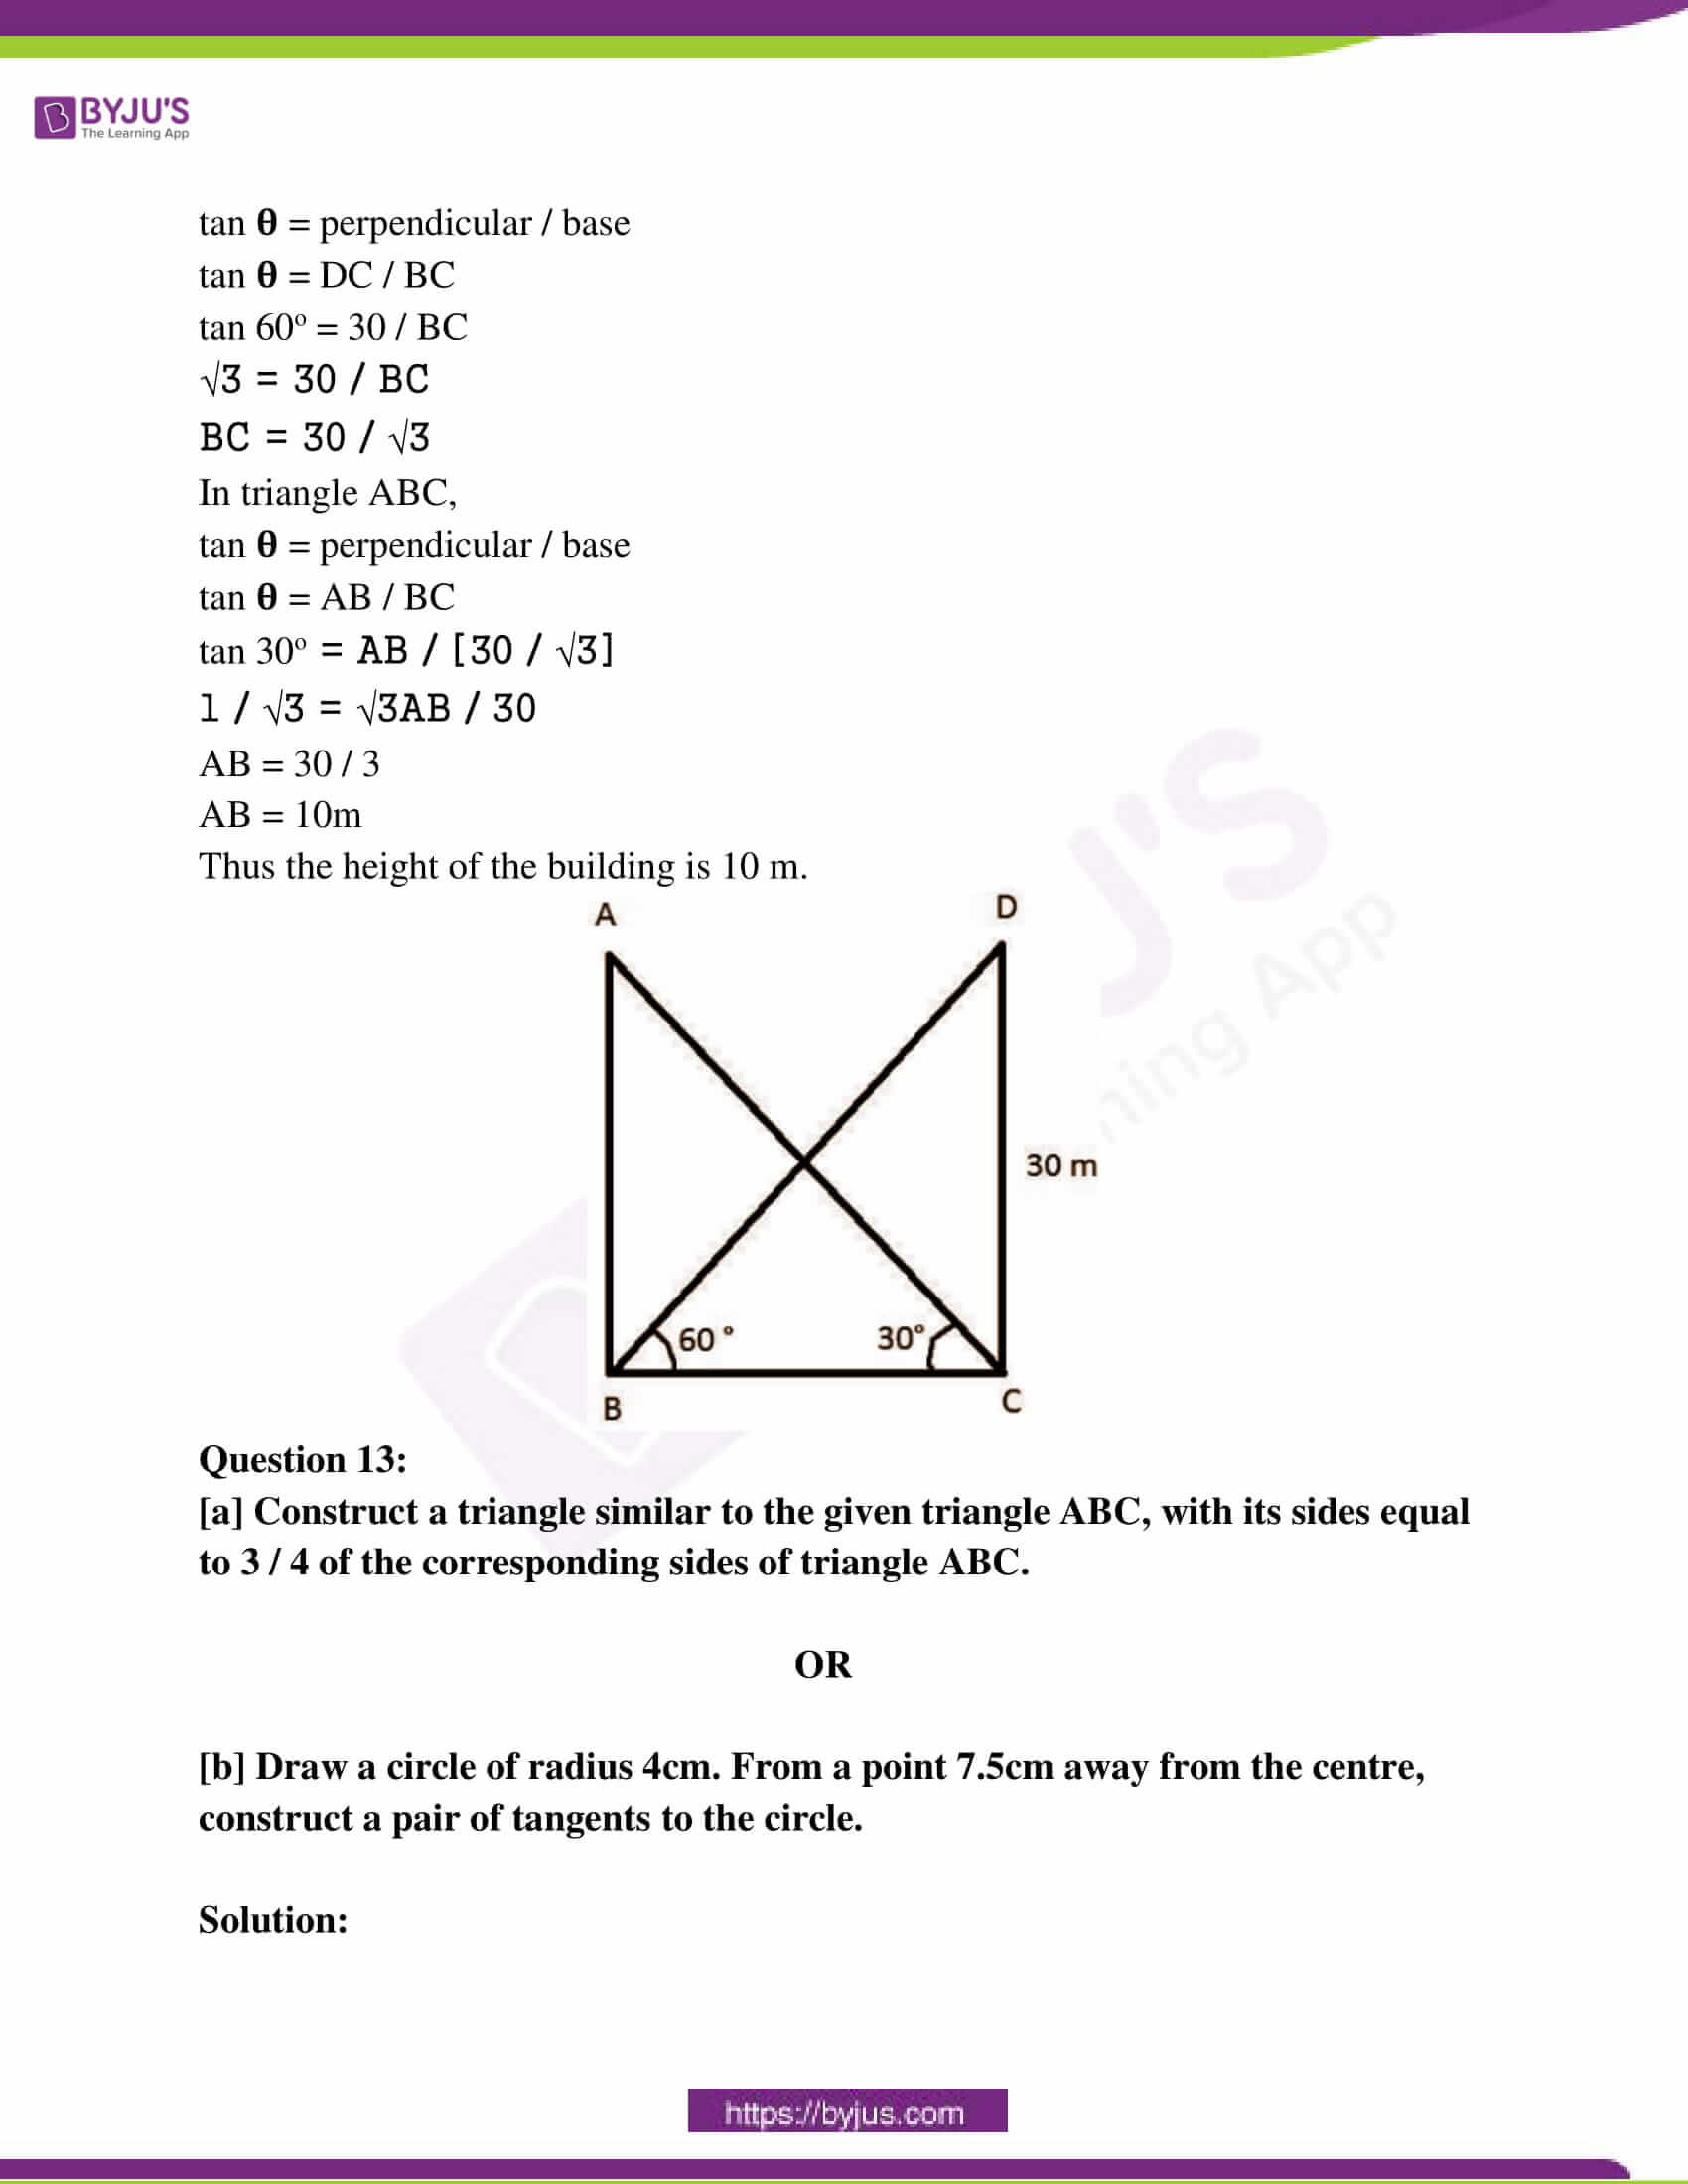 ap class 10 maths question paper 2 sol march 2018 10